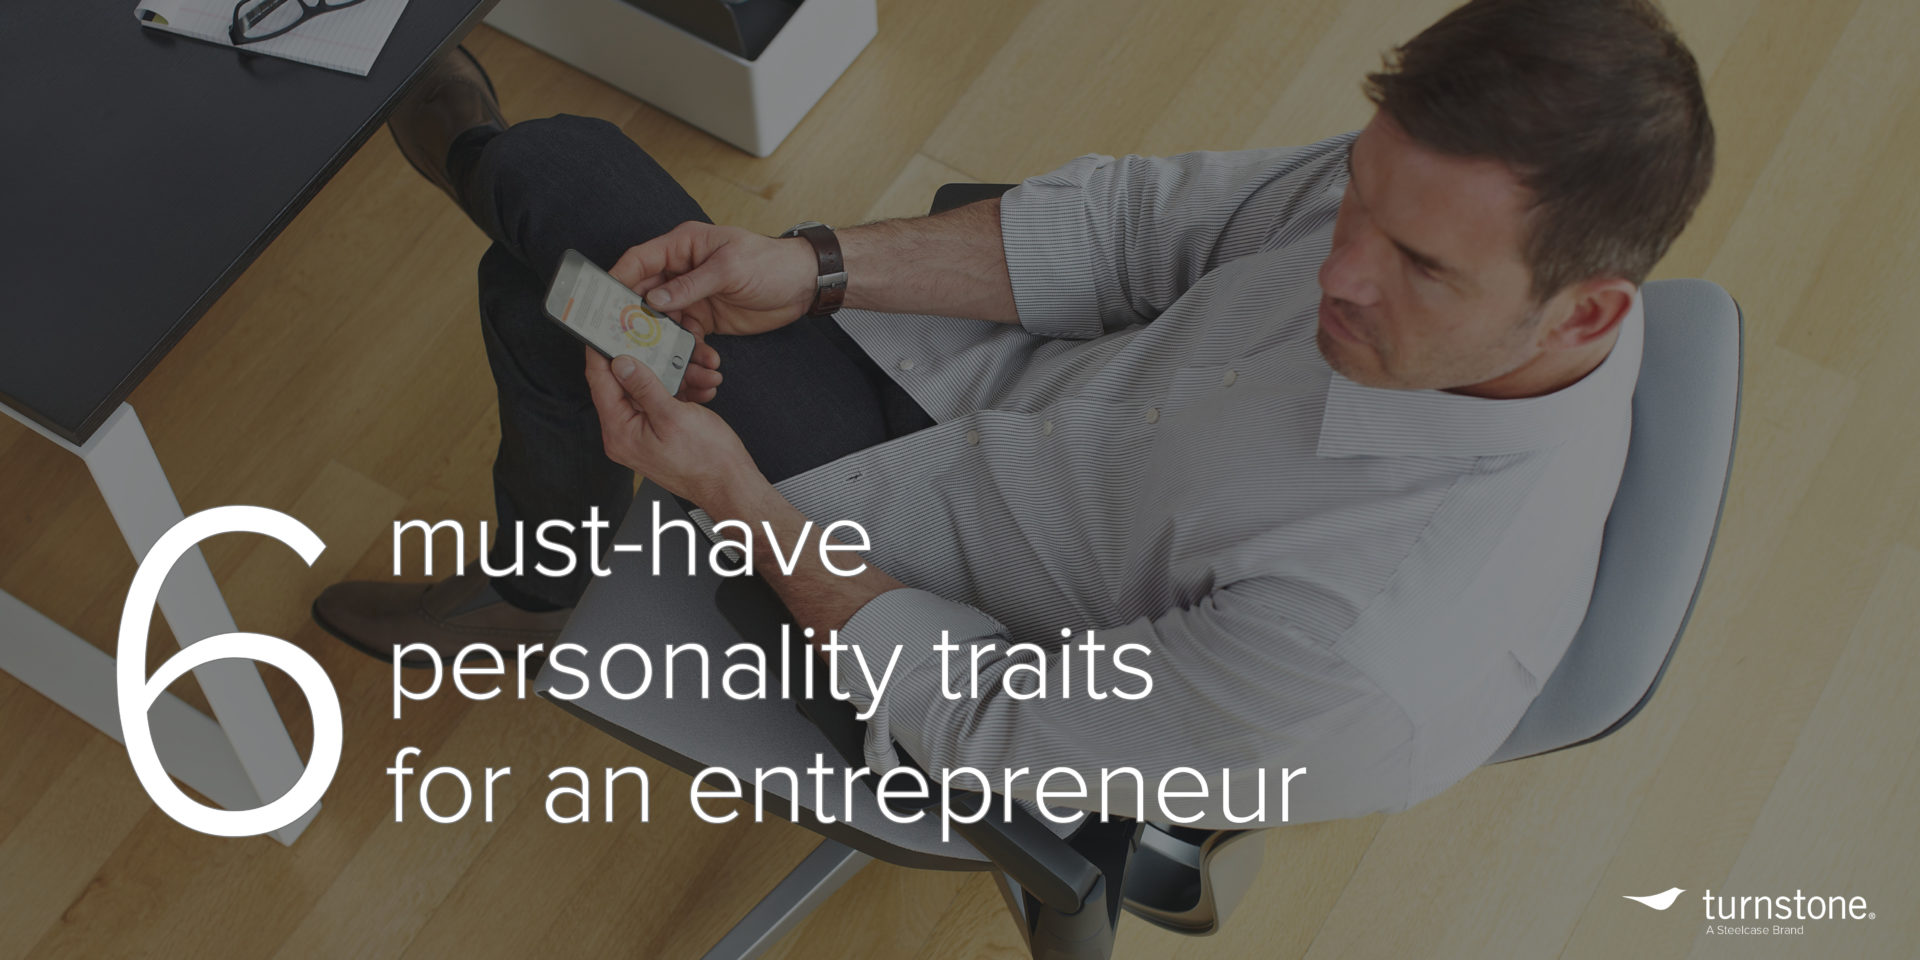 6 Must-Have Personality Traits for an Entrepreneur